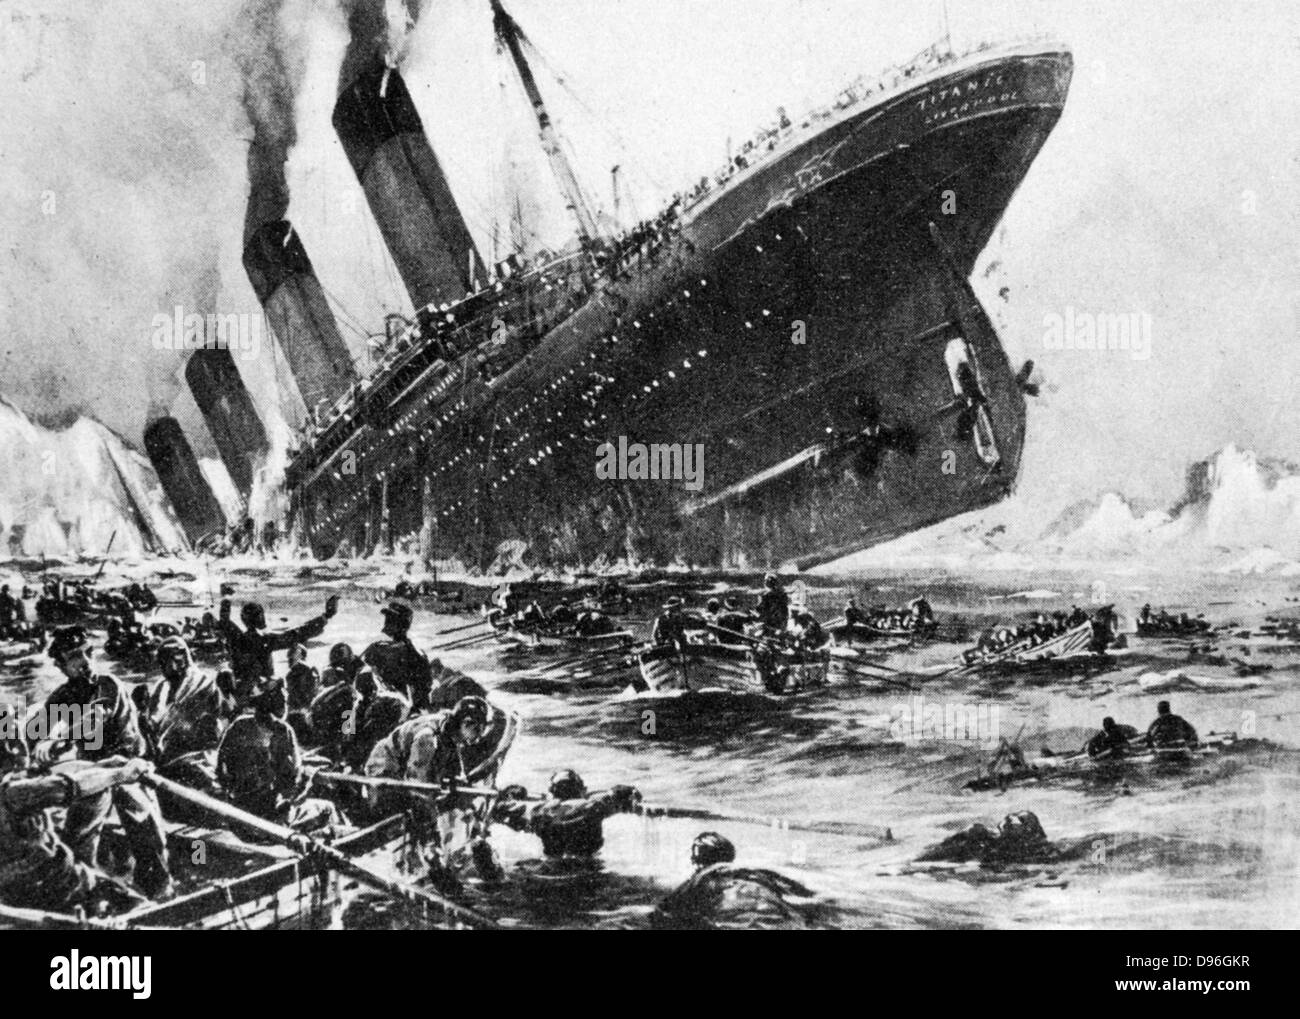 The loss of SS Titanic, 14 April 1912: The lifeboats. All that was left of the greatest ship in the world - the - Stock Image